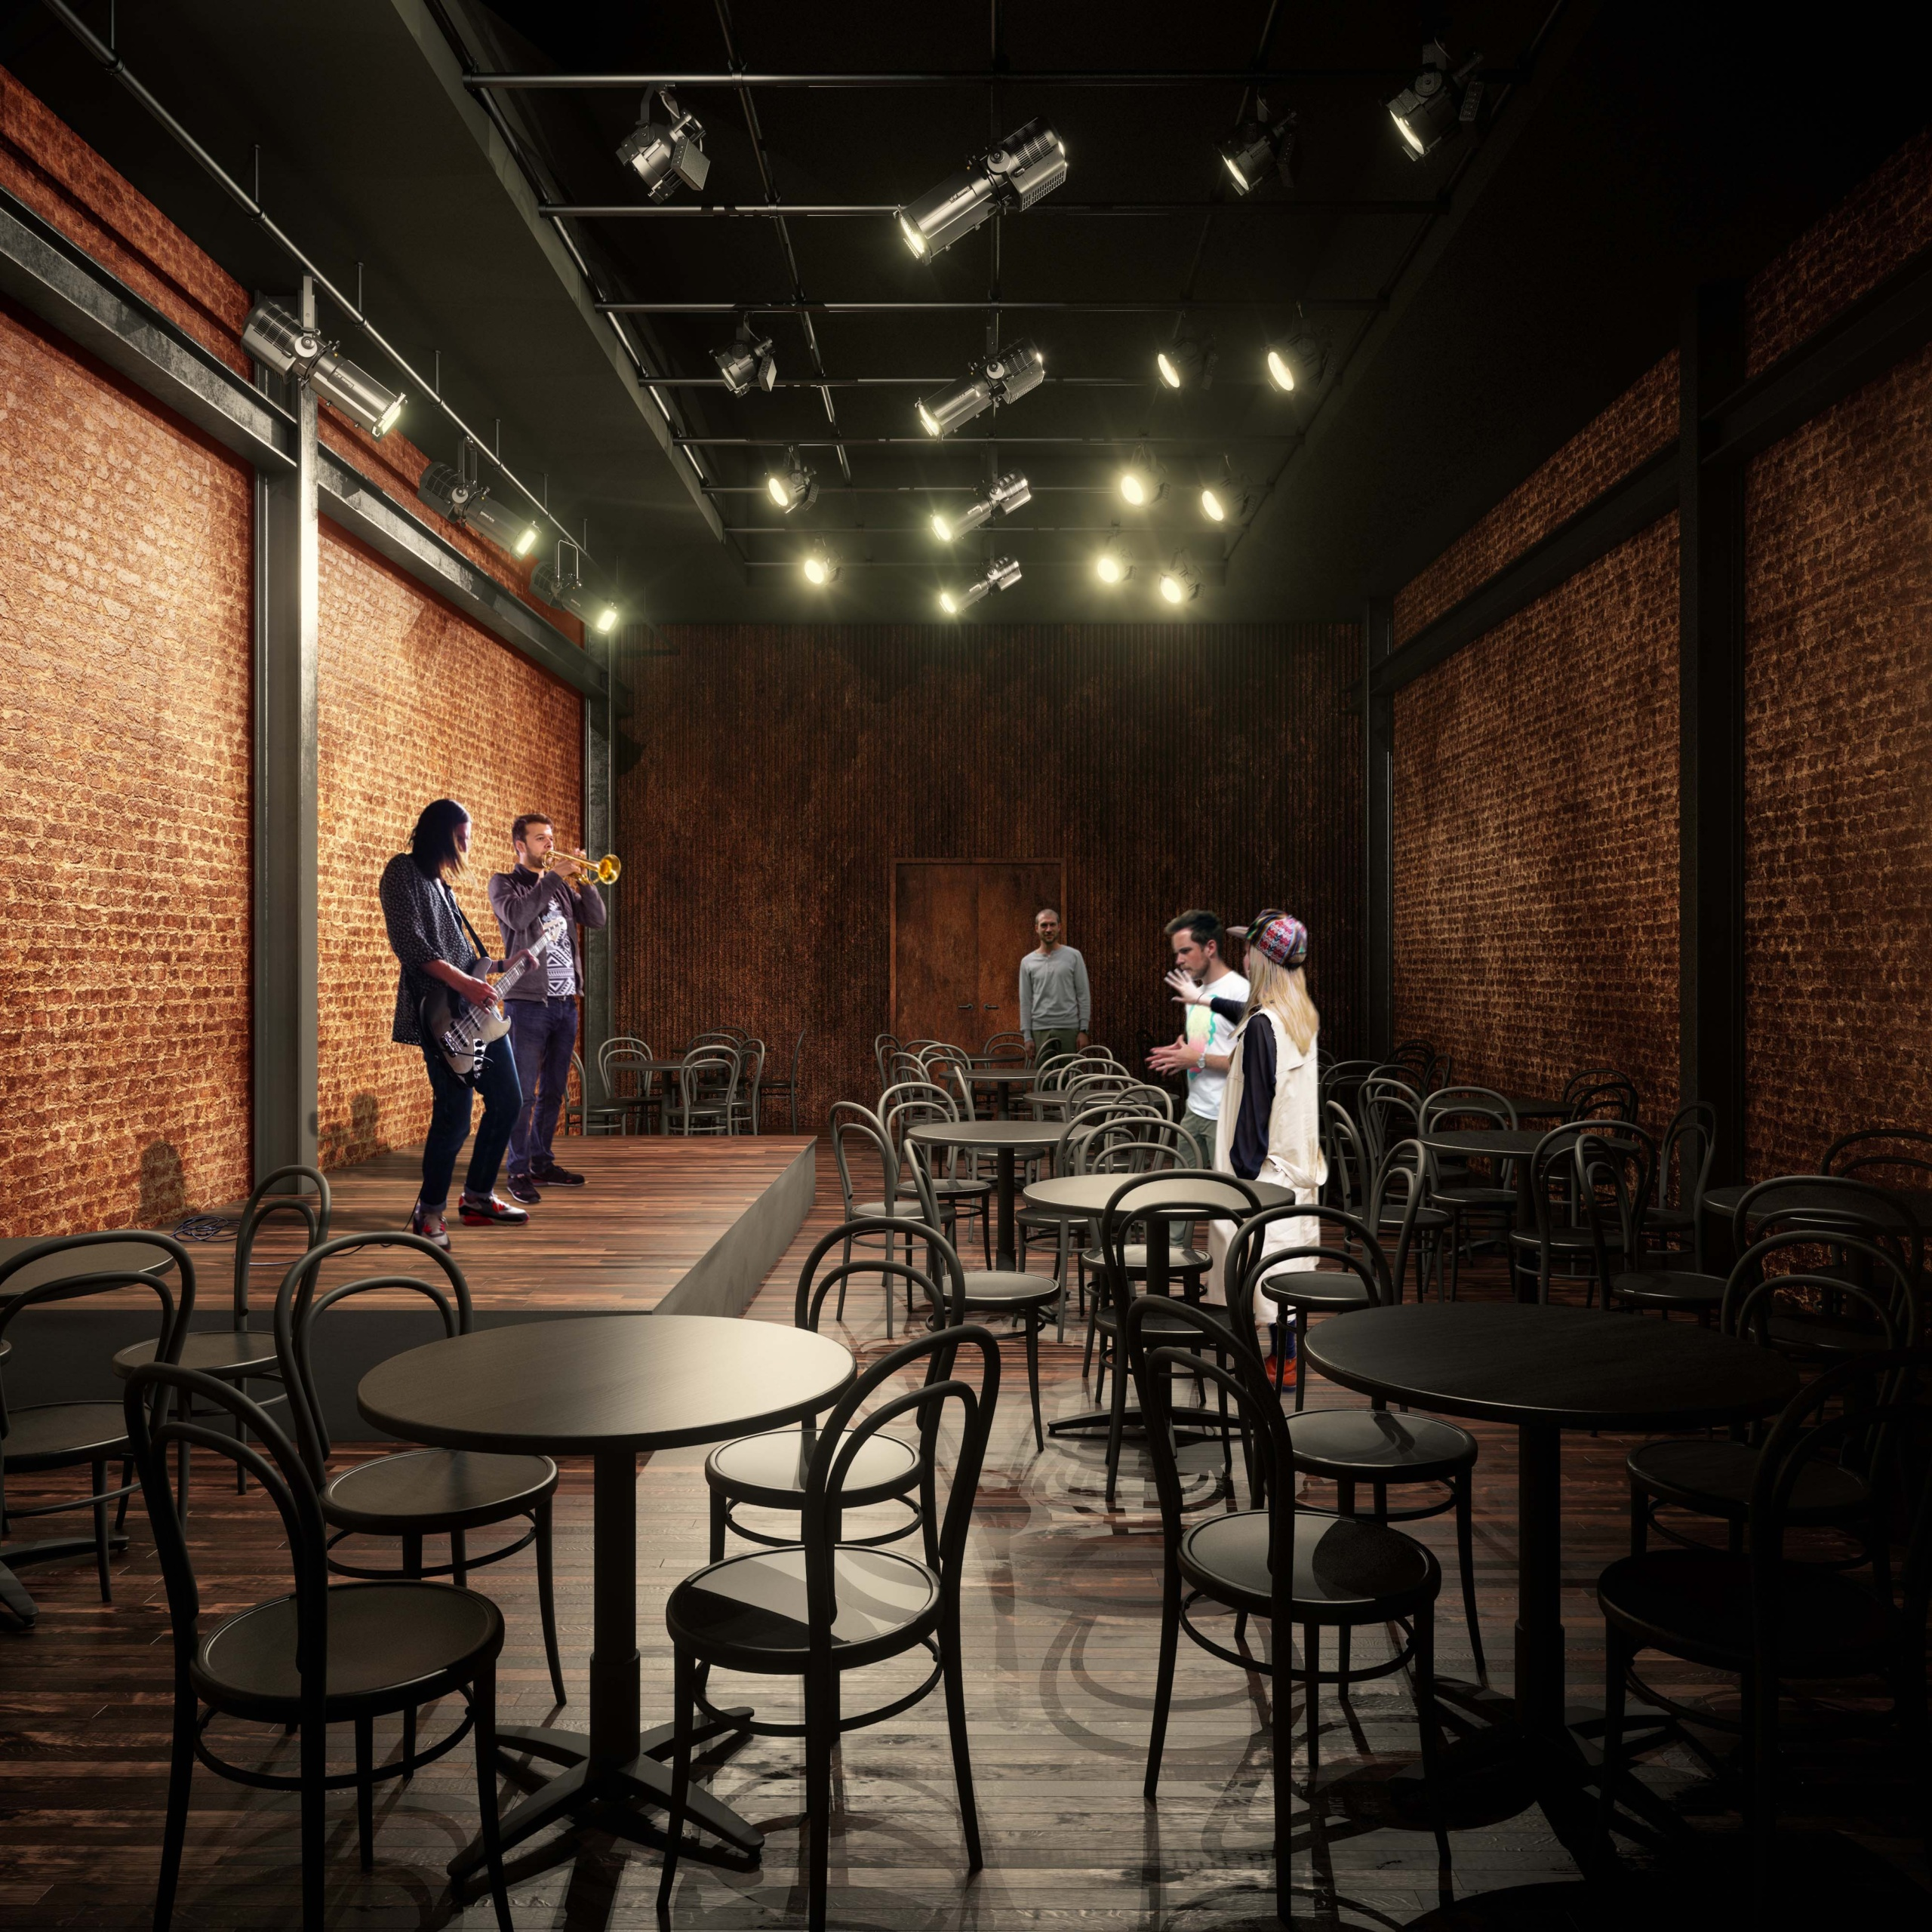 The new Club at 74a East 4th Street